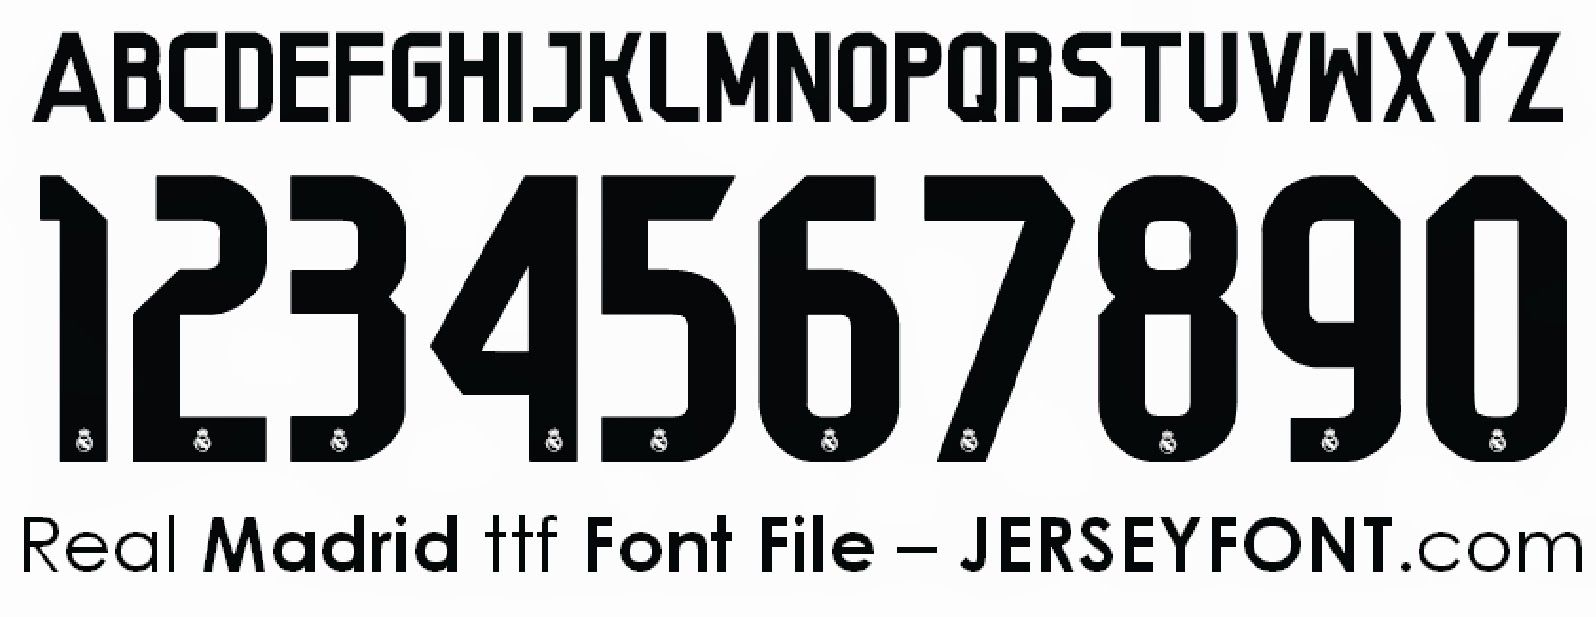 Real Madrid Font Jersey Font Real Madrid Sports Fonts